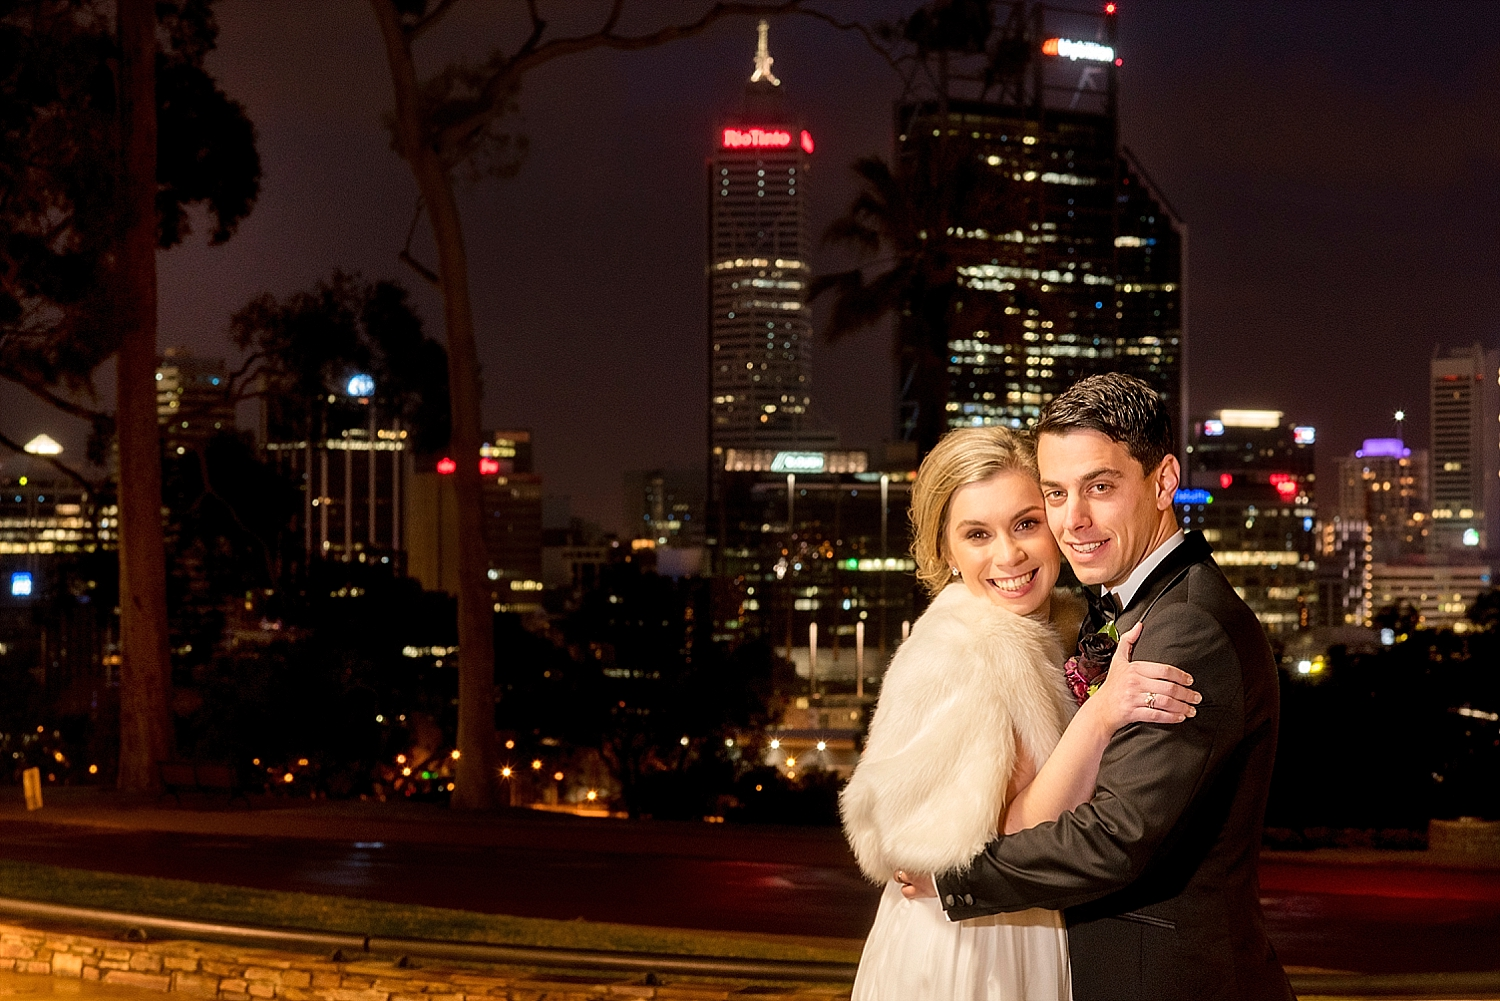 48_perth skyline wedding photo.jpg